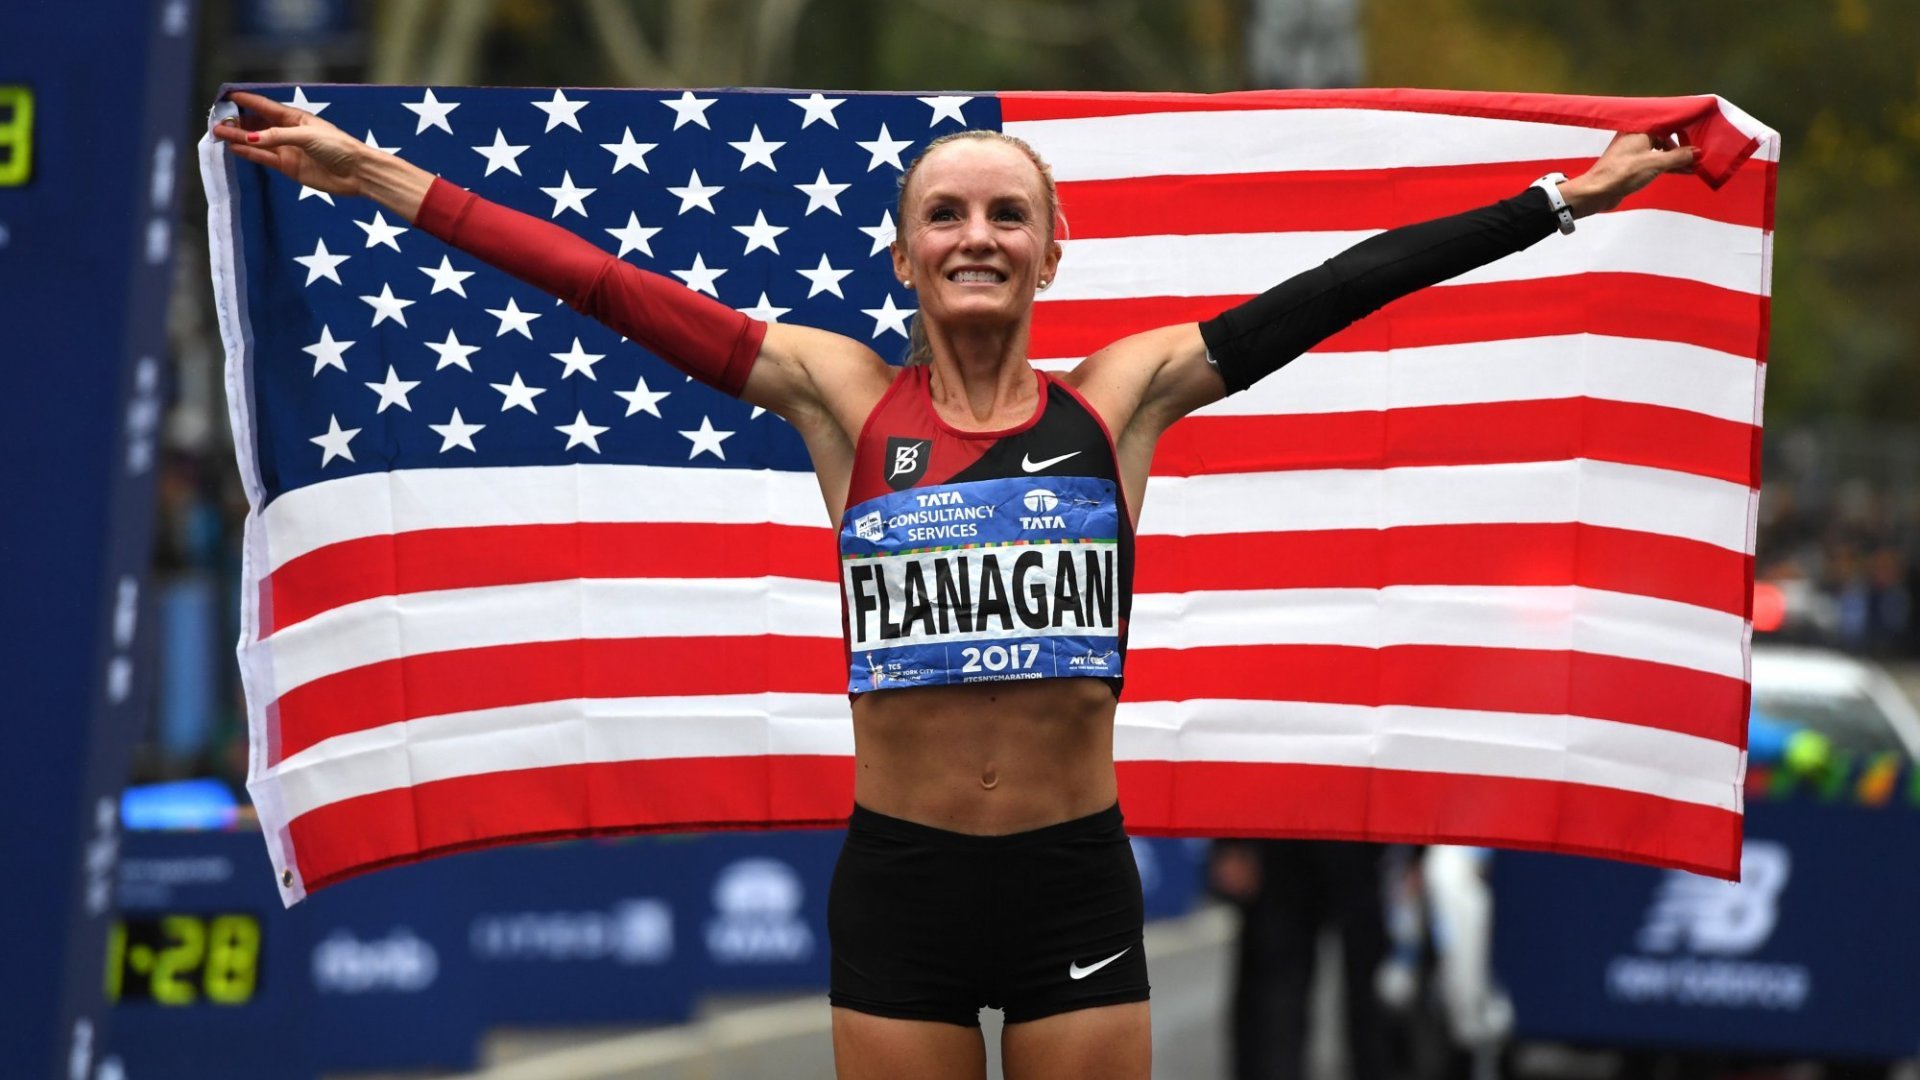 3 Ways to Persevere--Like the First U.S. Woman in 40 Years to Win the NYC Marathon Just Did